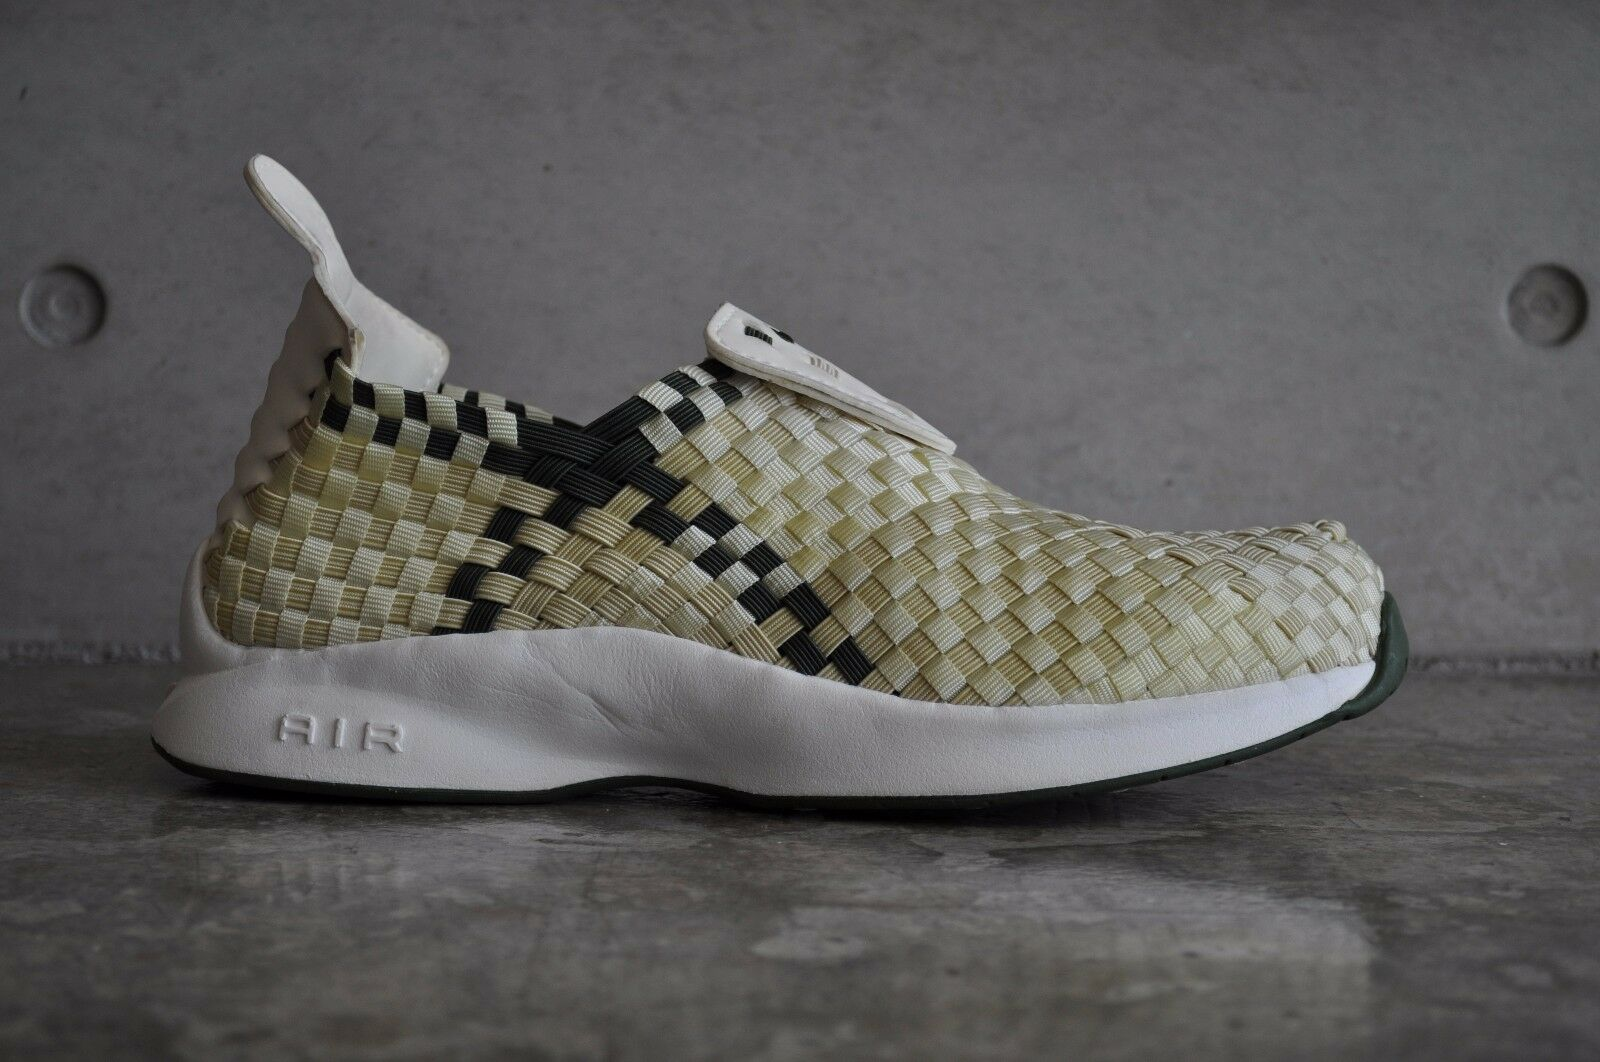 Nike Air Woven - Ivory Army Olive